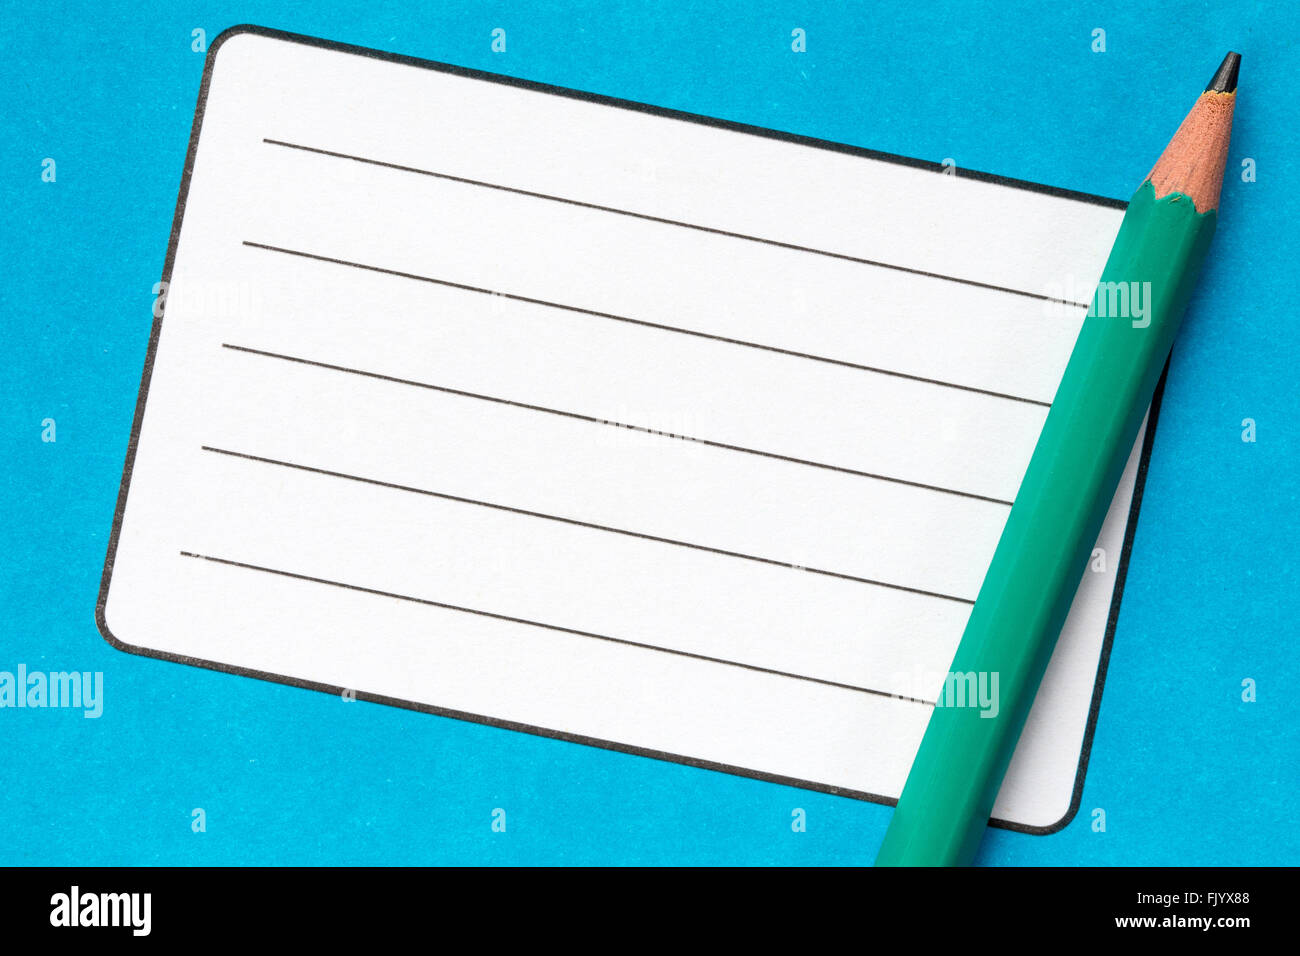 School exercise book with empty name label and pencil - Stock Image